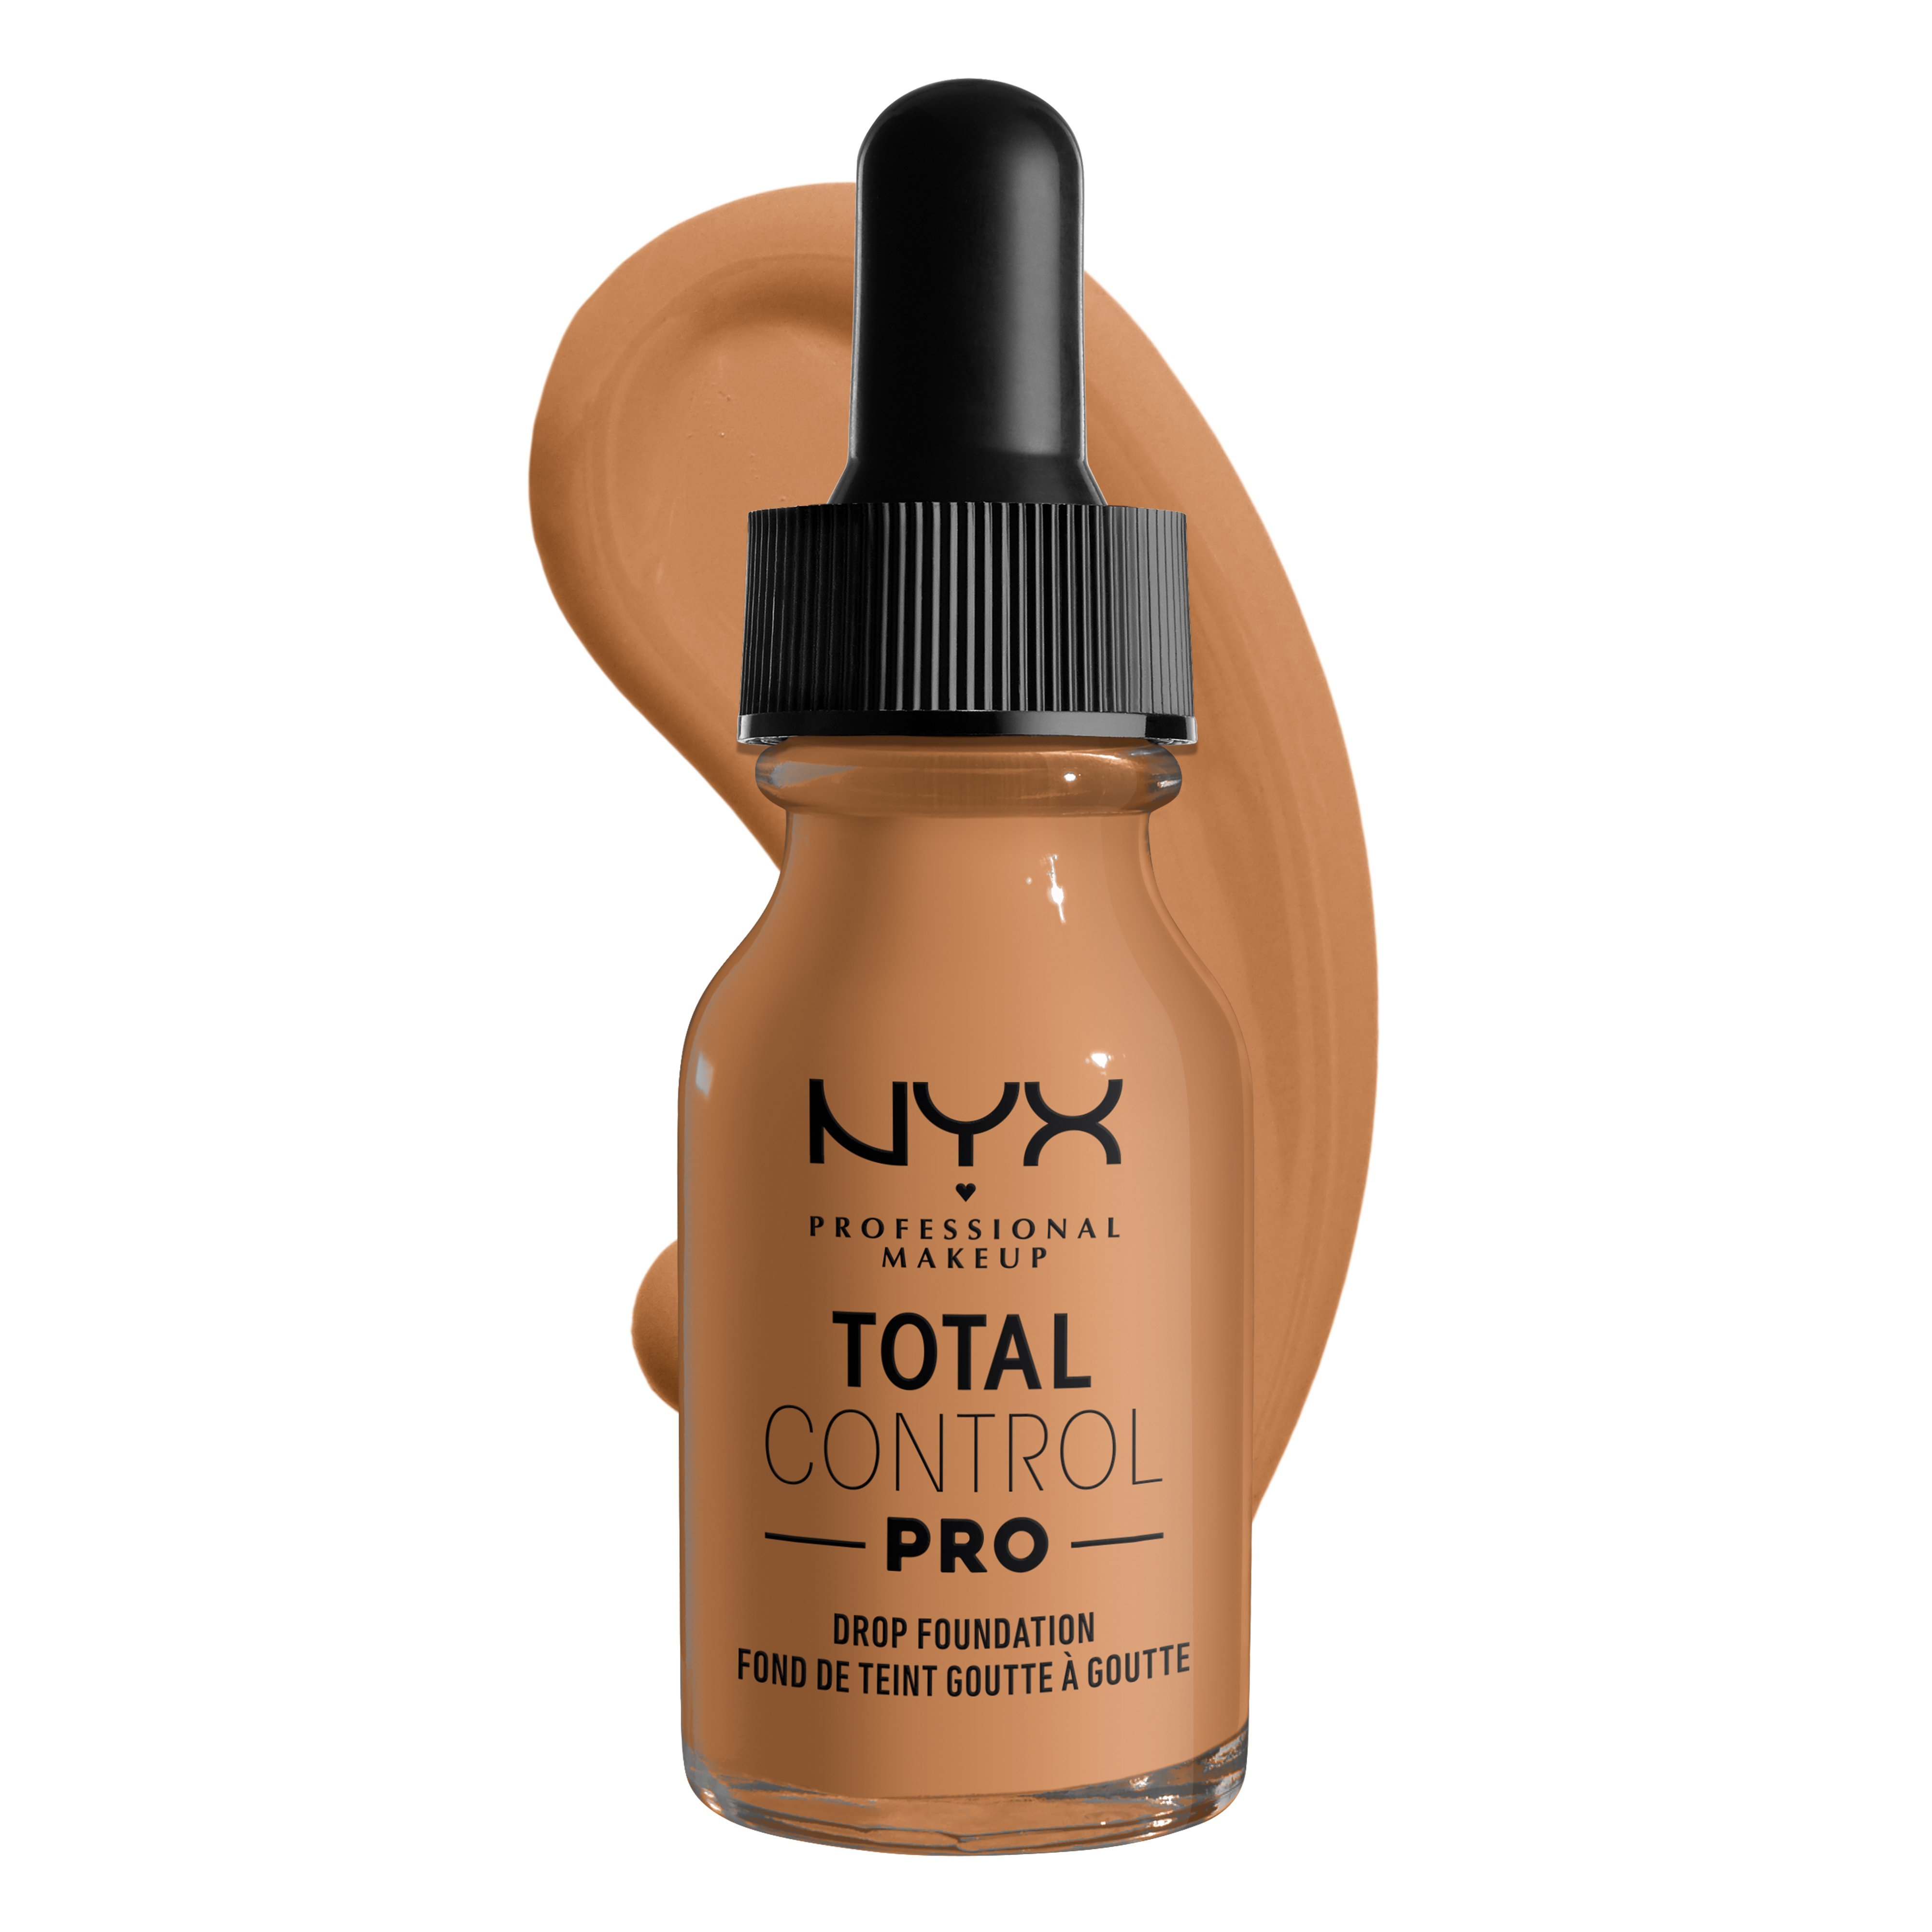 Total Control Pro Drop Foundation Nyx